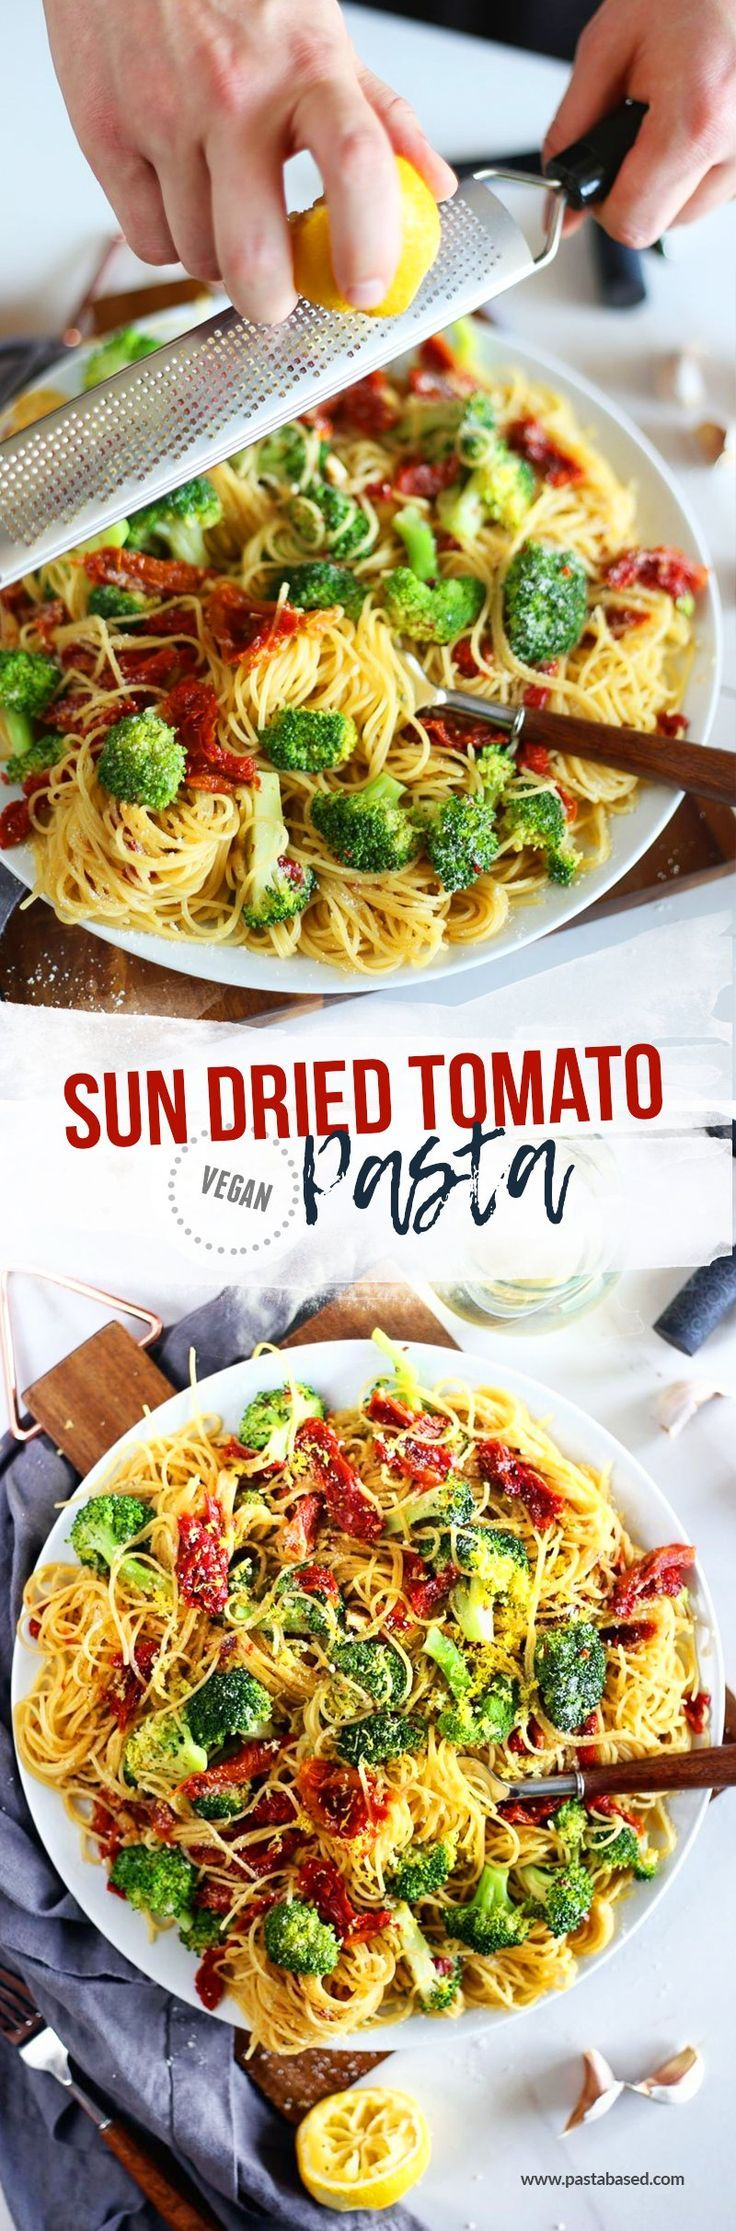 Vegan. This sun dried tomato pasta by Pasta-based is cooked in a light, brothy, white wine sauce. Tossed in angel hair pasta, broccoli florets, and topped with lemon zest.